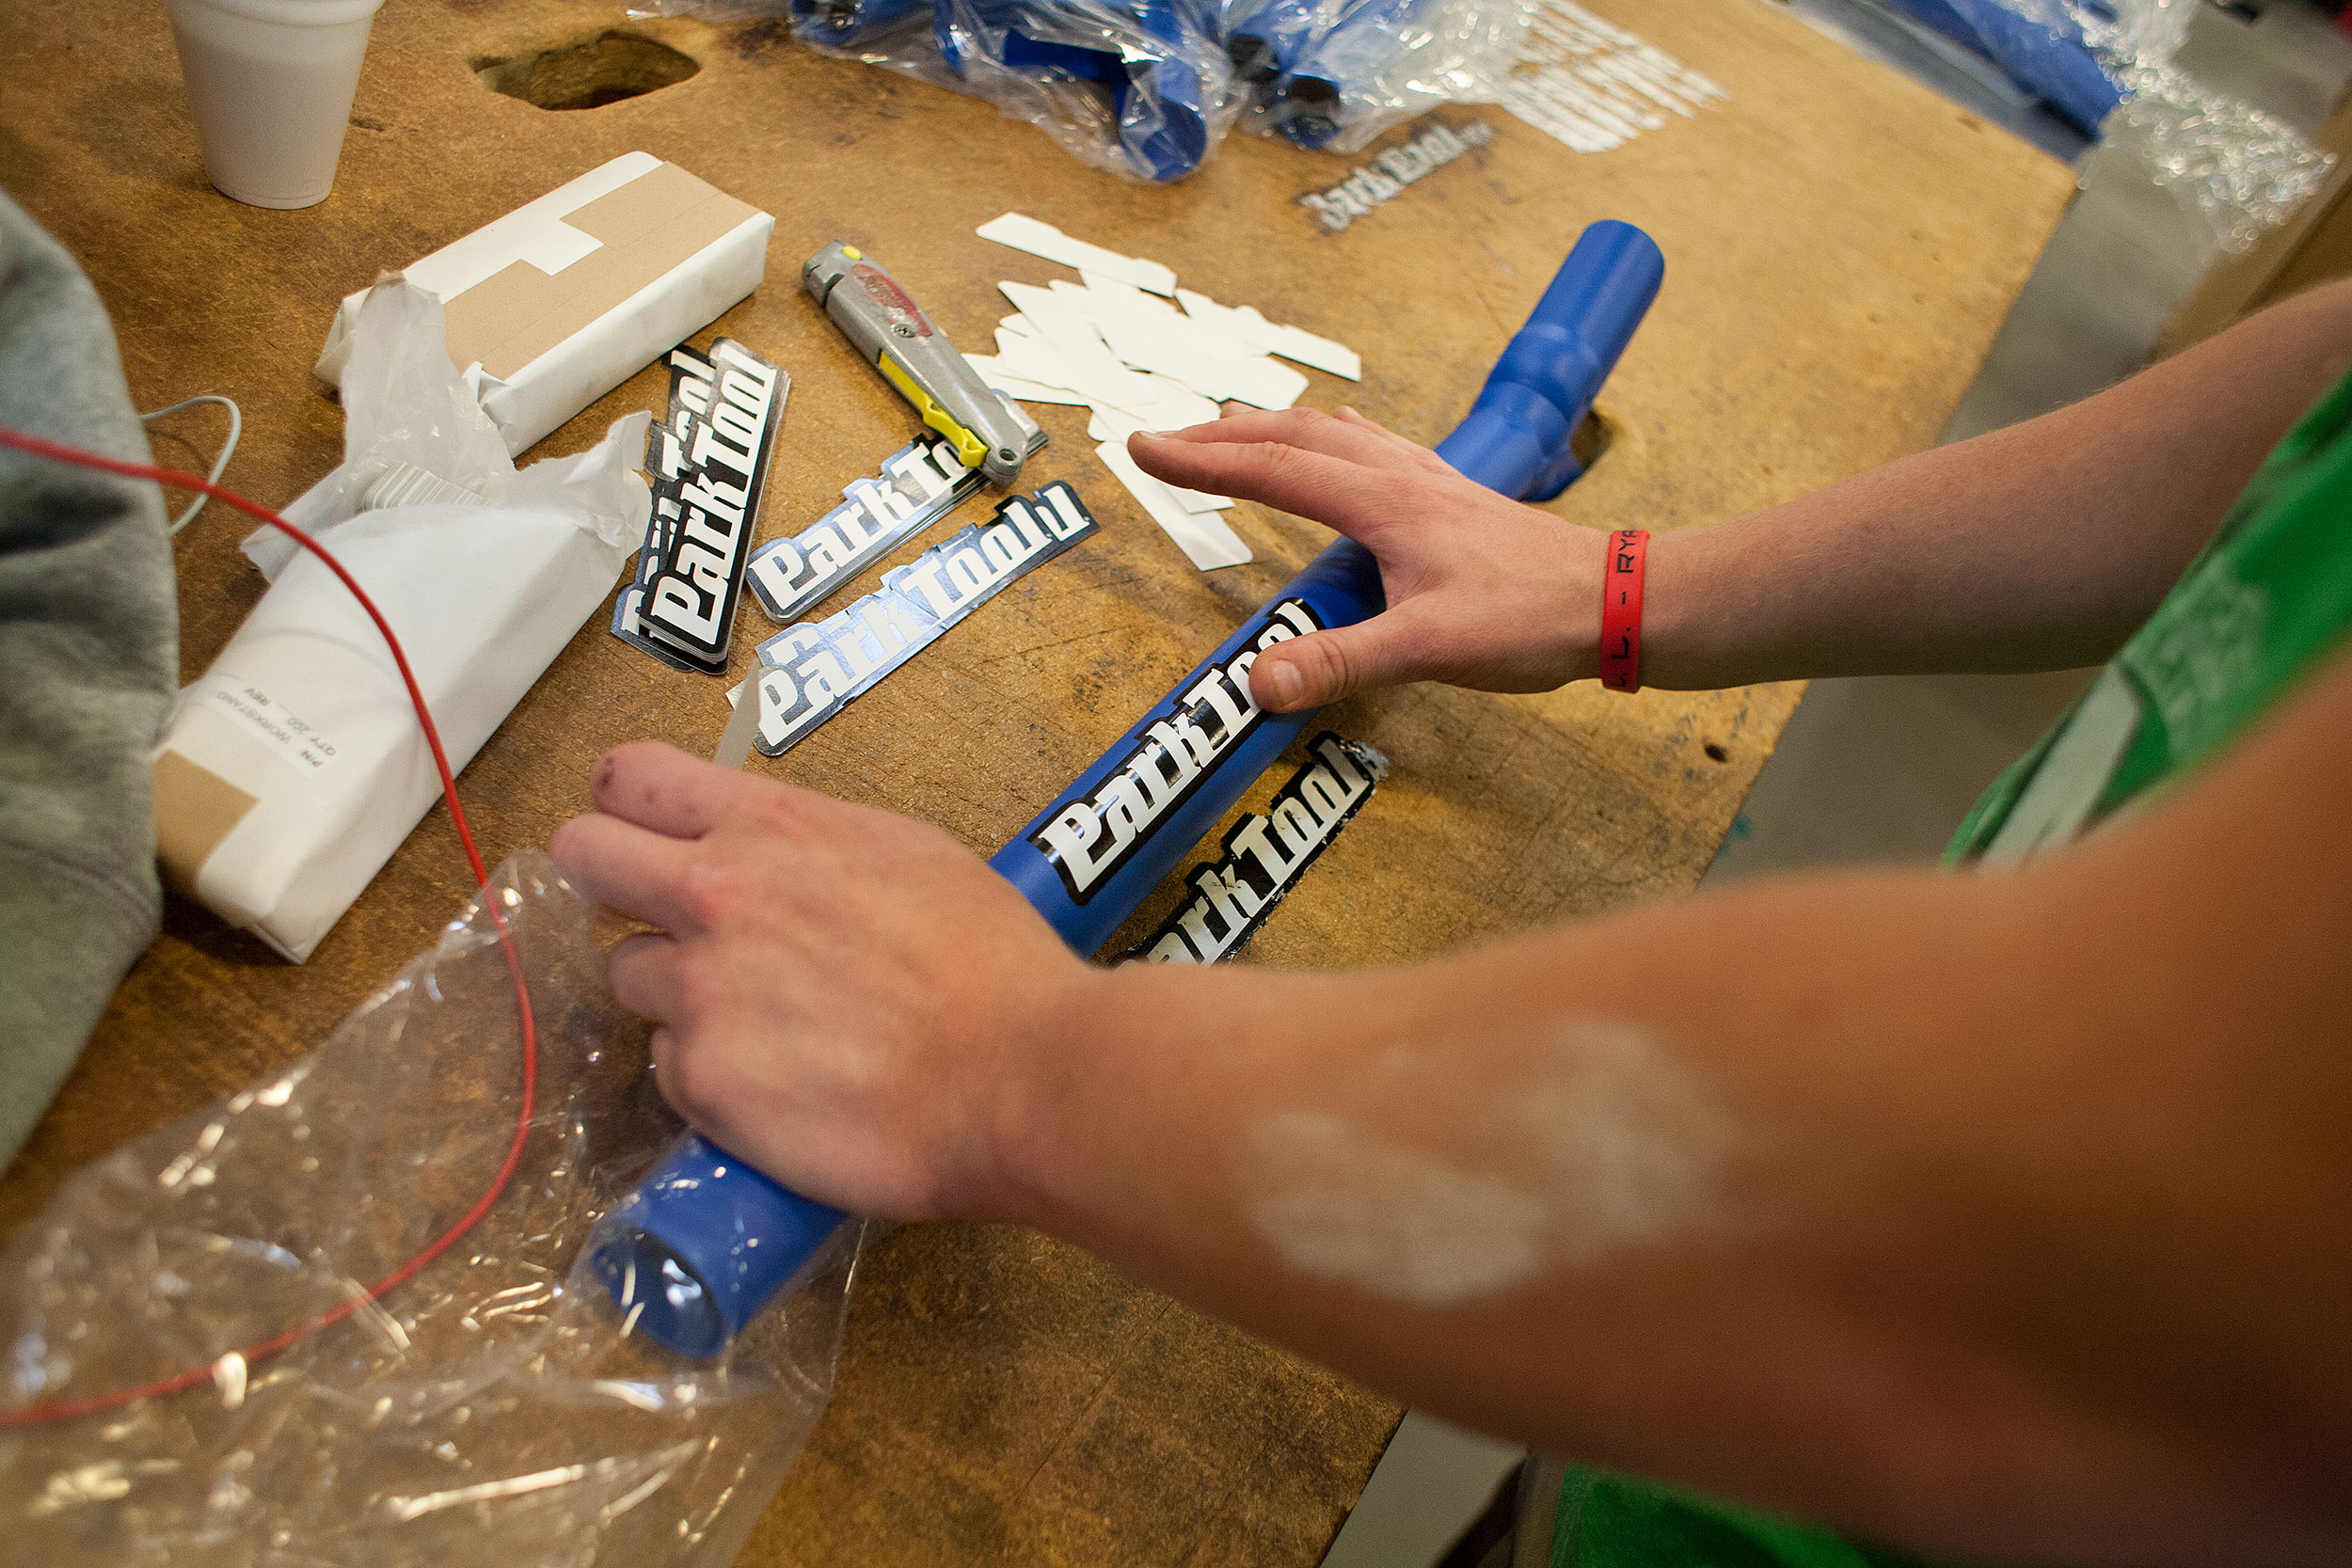 An employee affixes the Park Tool name to a product. Photo: David Pierini/Element.ly